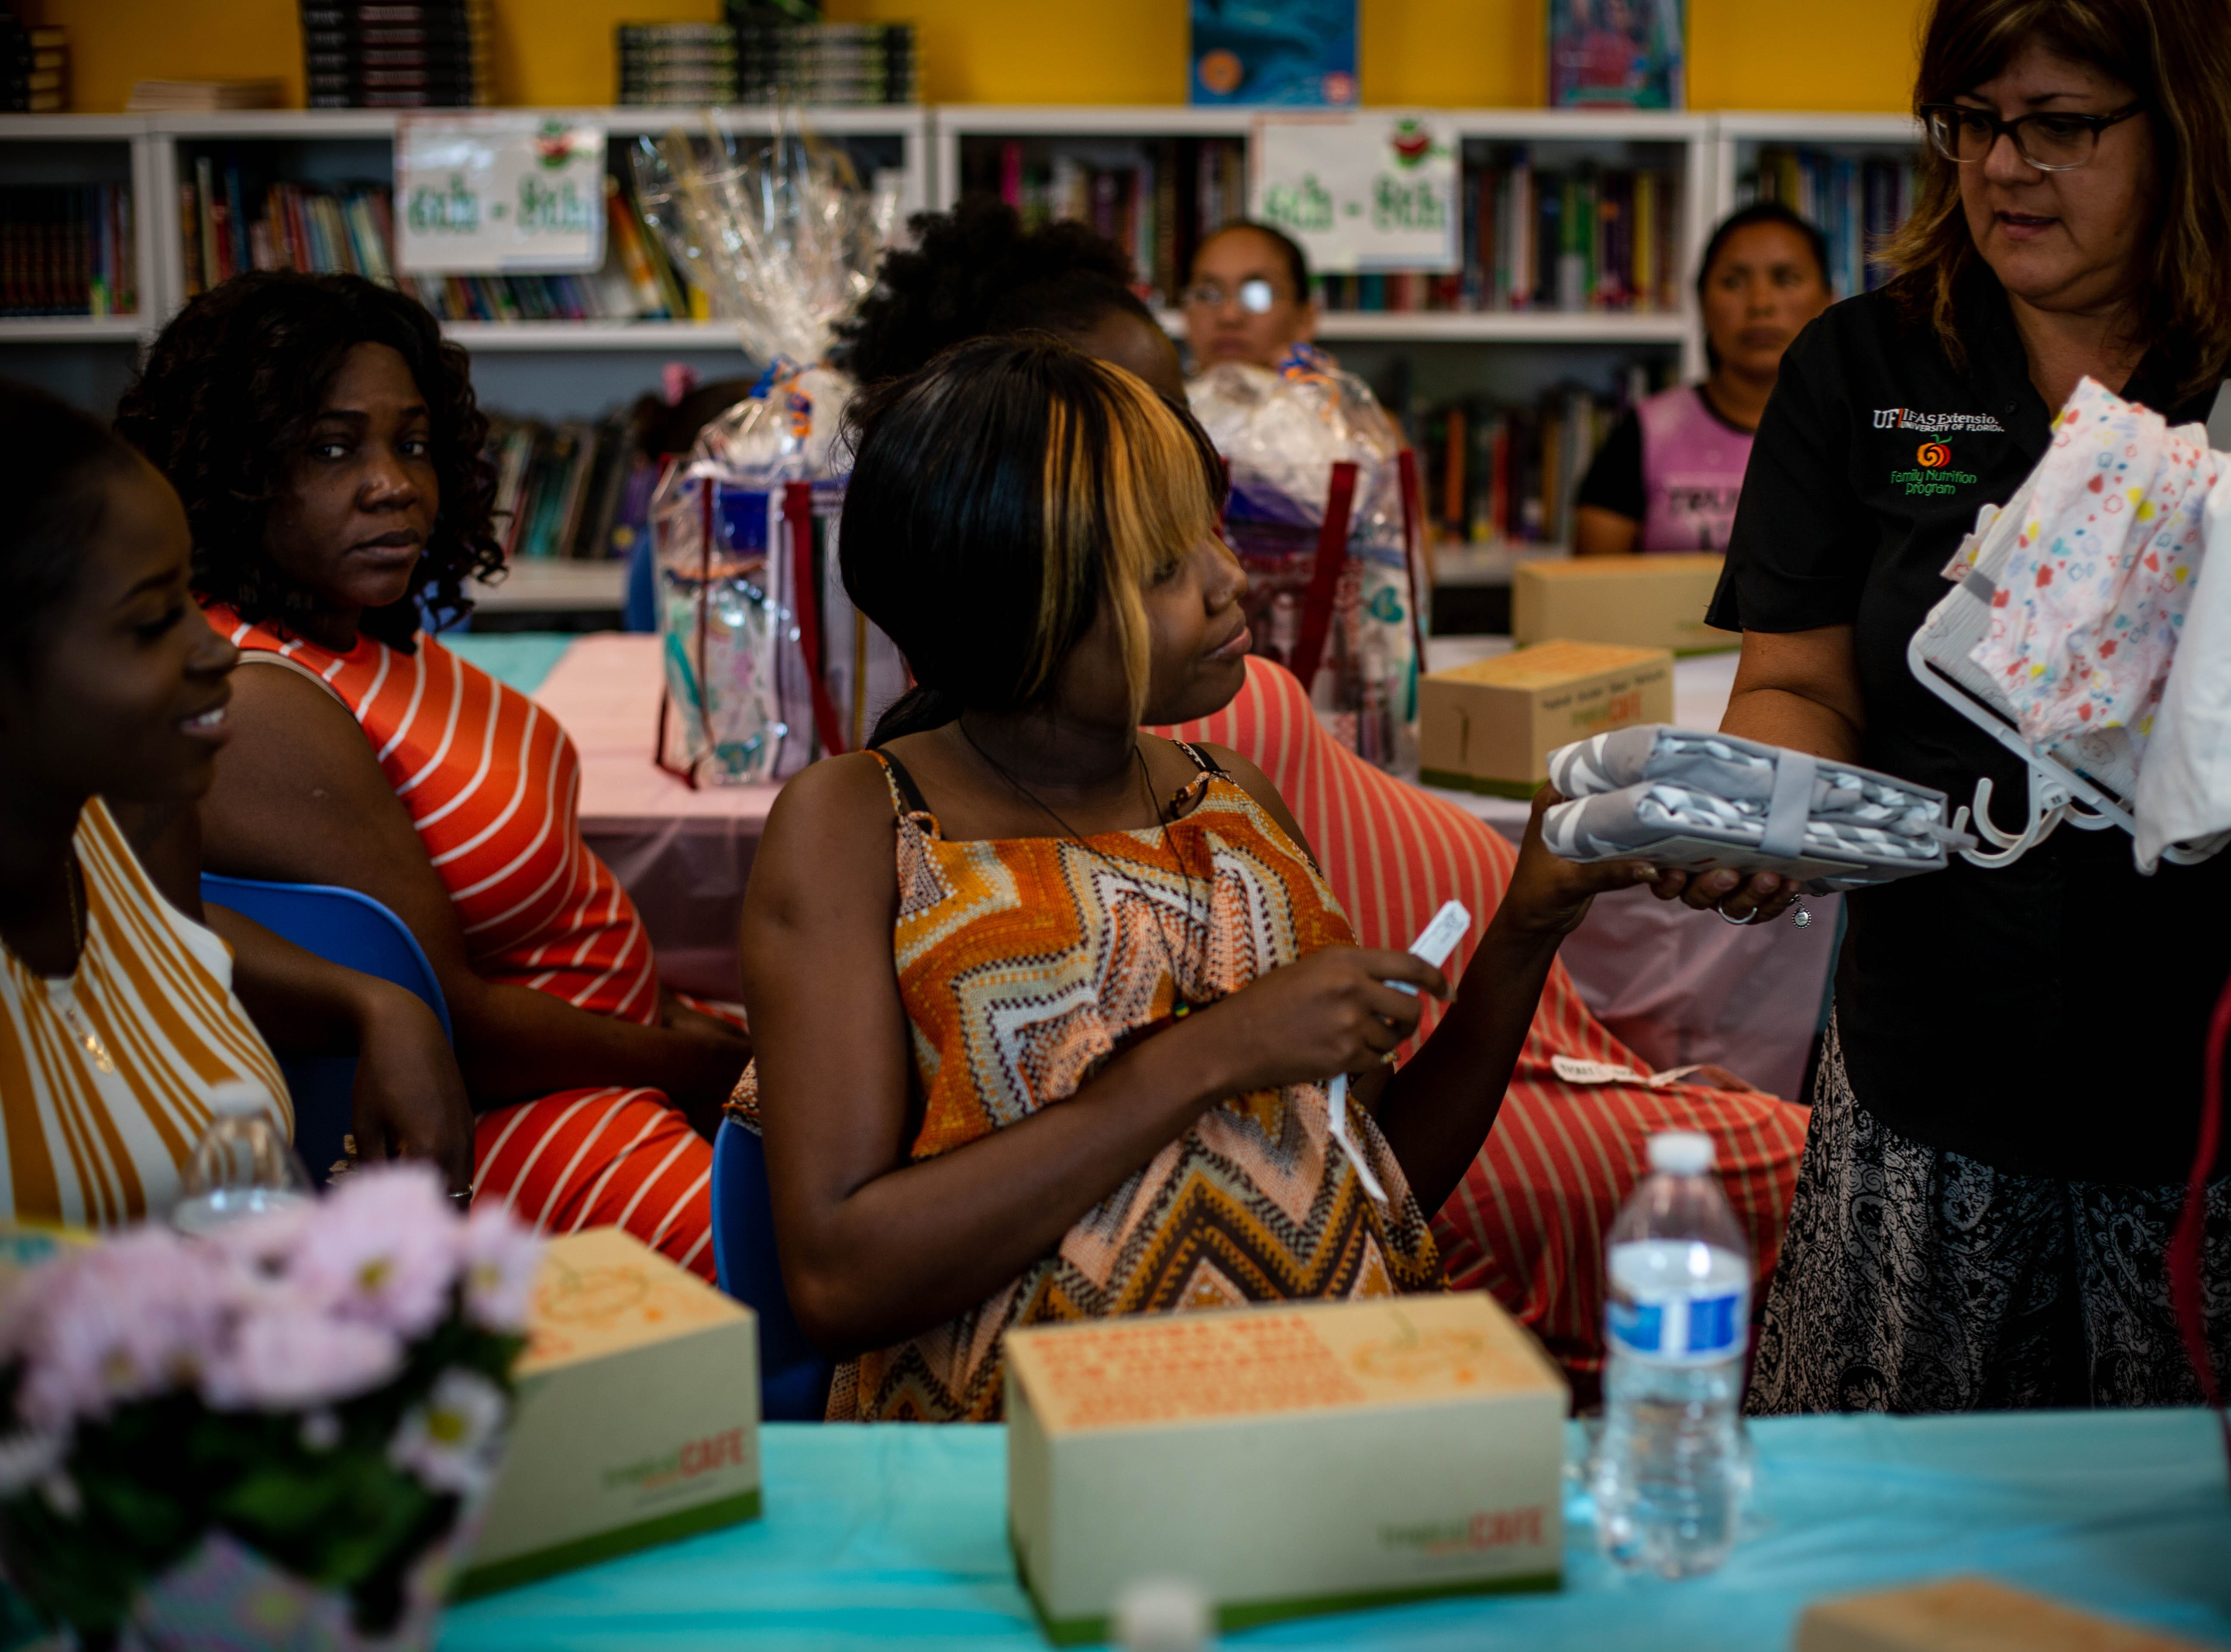 Barbara Colin receives a raffle item at the Immokalee Community Baby Shower at the Boys & Girls Club in Immokalee on Thursday, May 9, 2019.